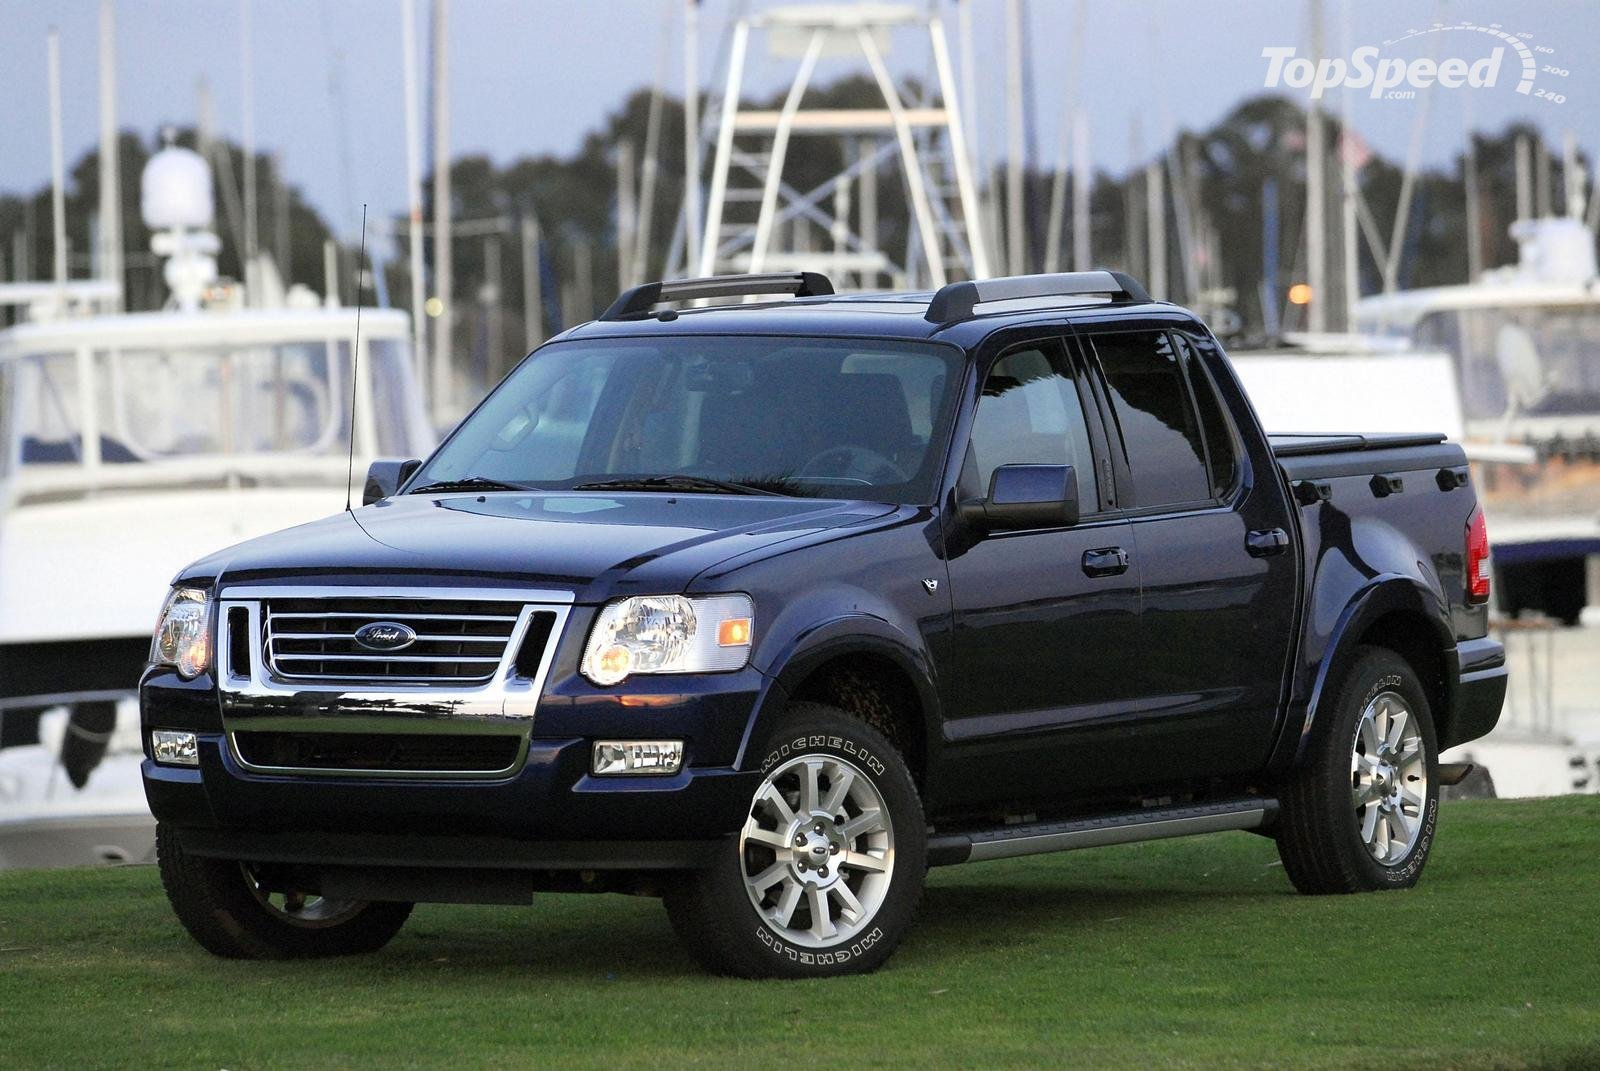 2008 Ford Explorer Sport Trac #10